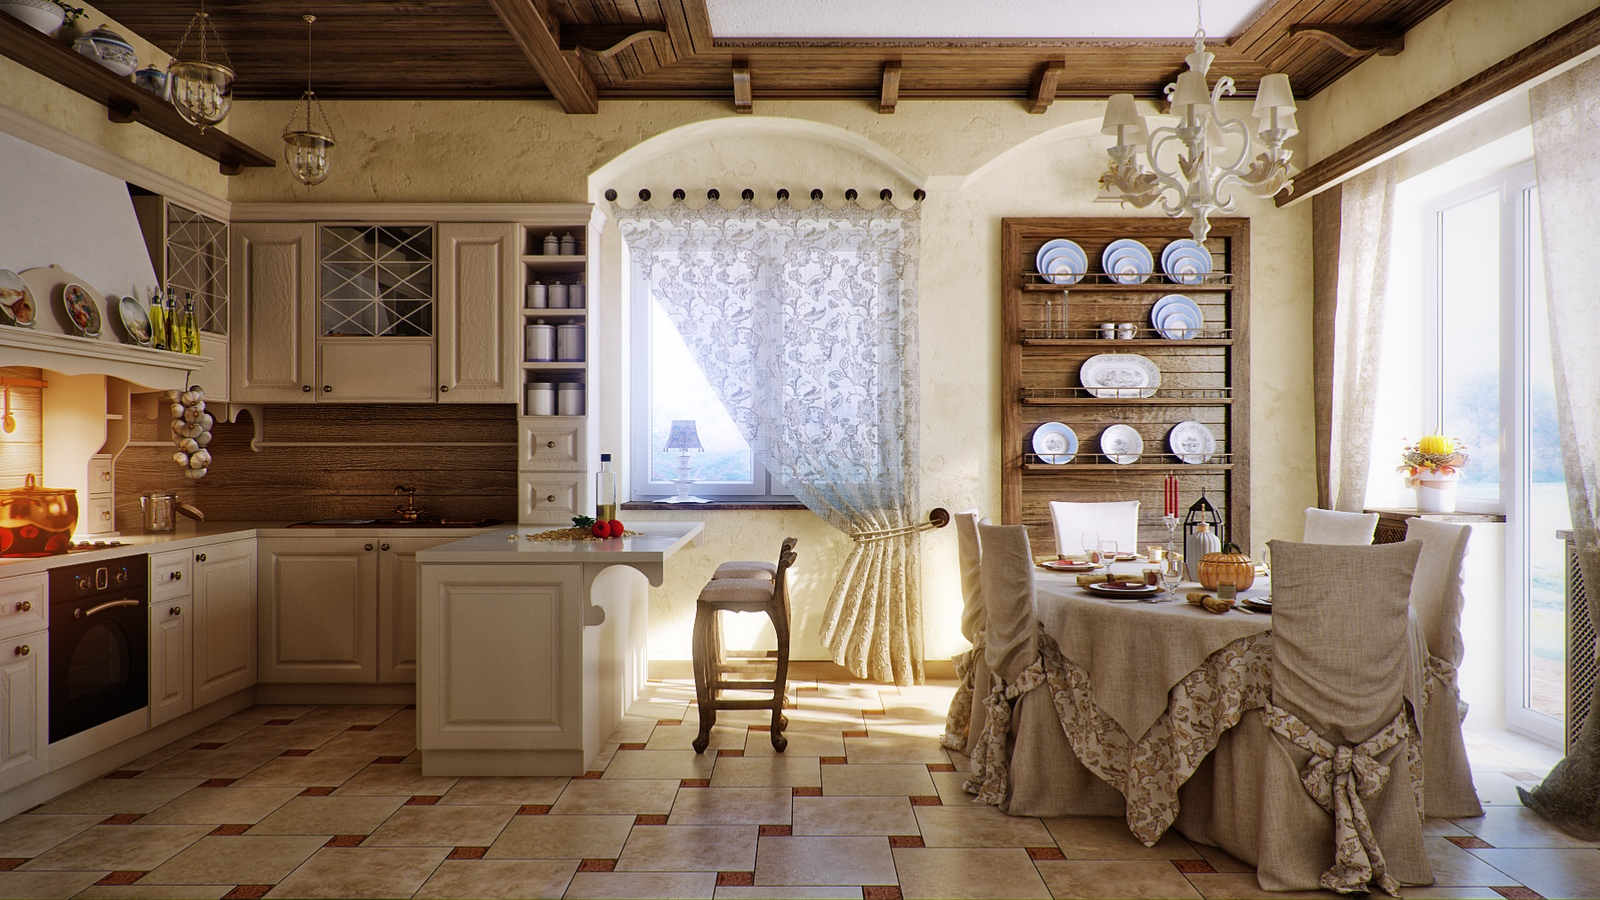 kitchen-dining-designs-inspiration-and-ideas-8